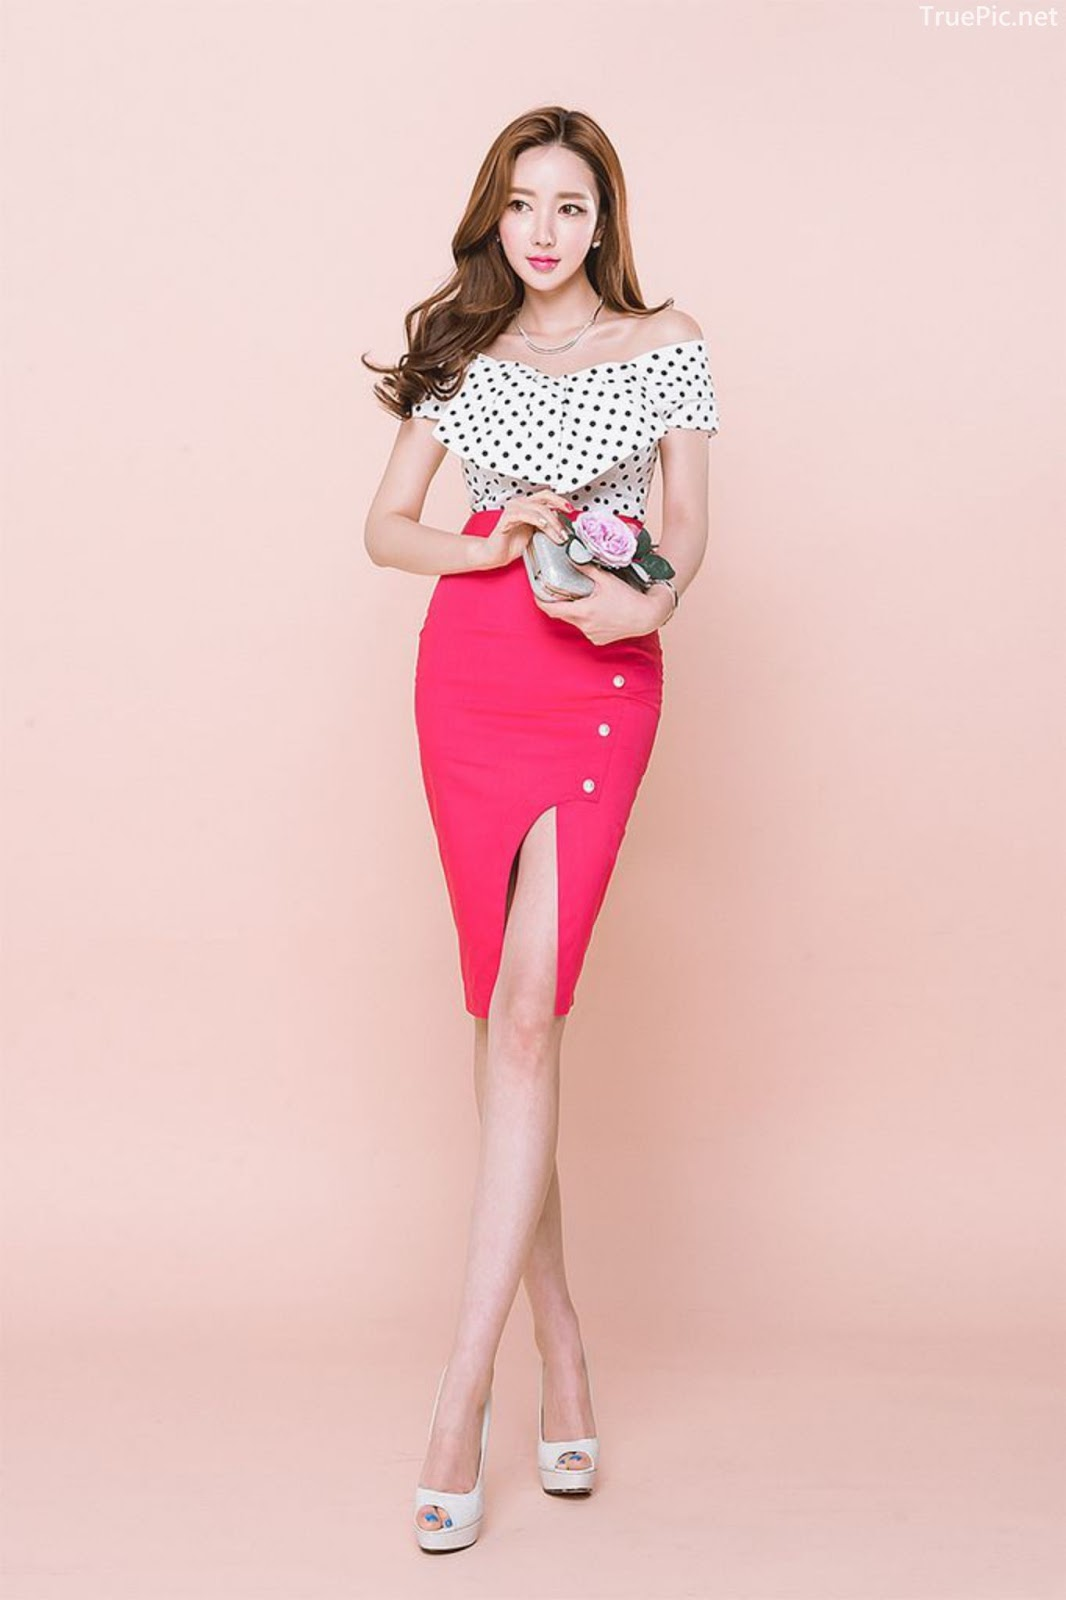 Lee Yeon Jeong - Indoor Photoshoot Collection - Korean fashion model - Part 4 - Picture 8